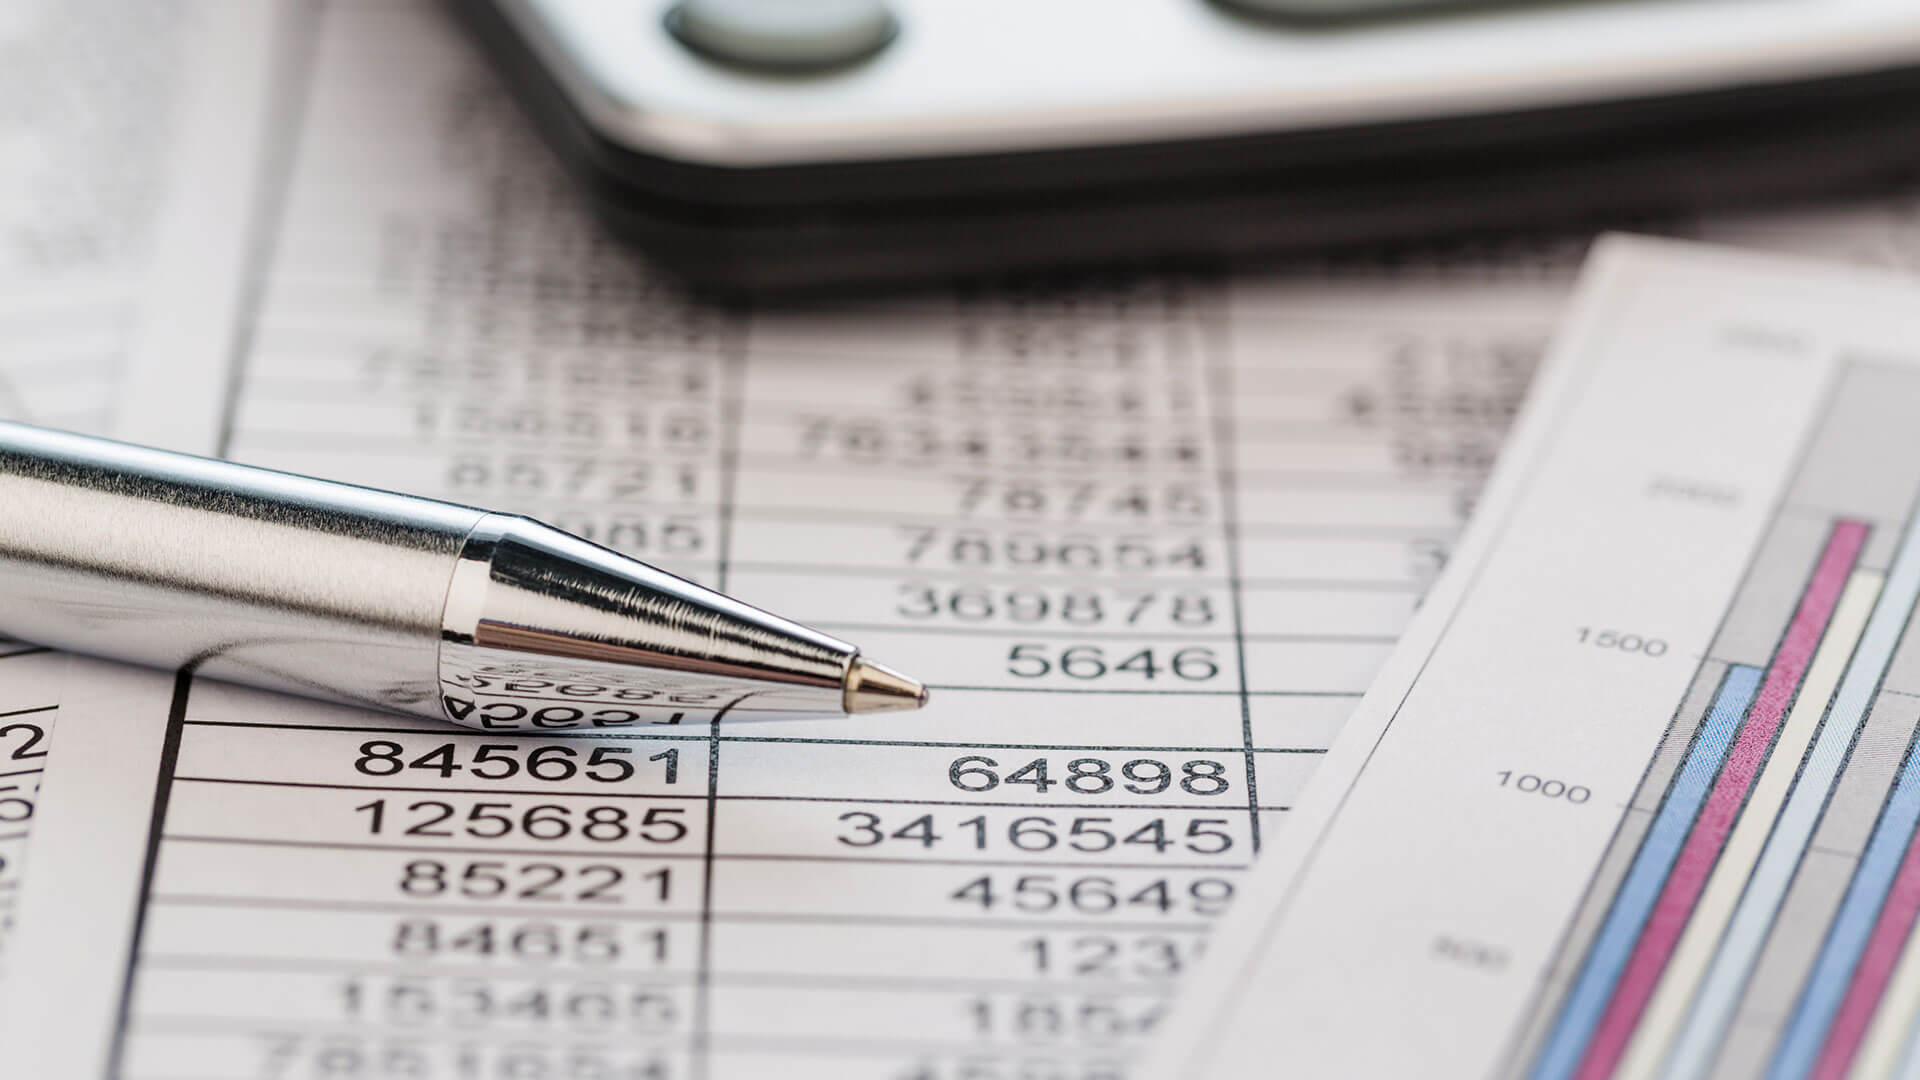 Financial documents on a table